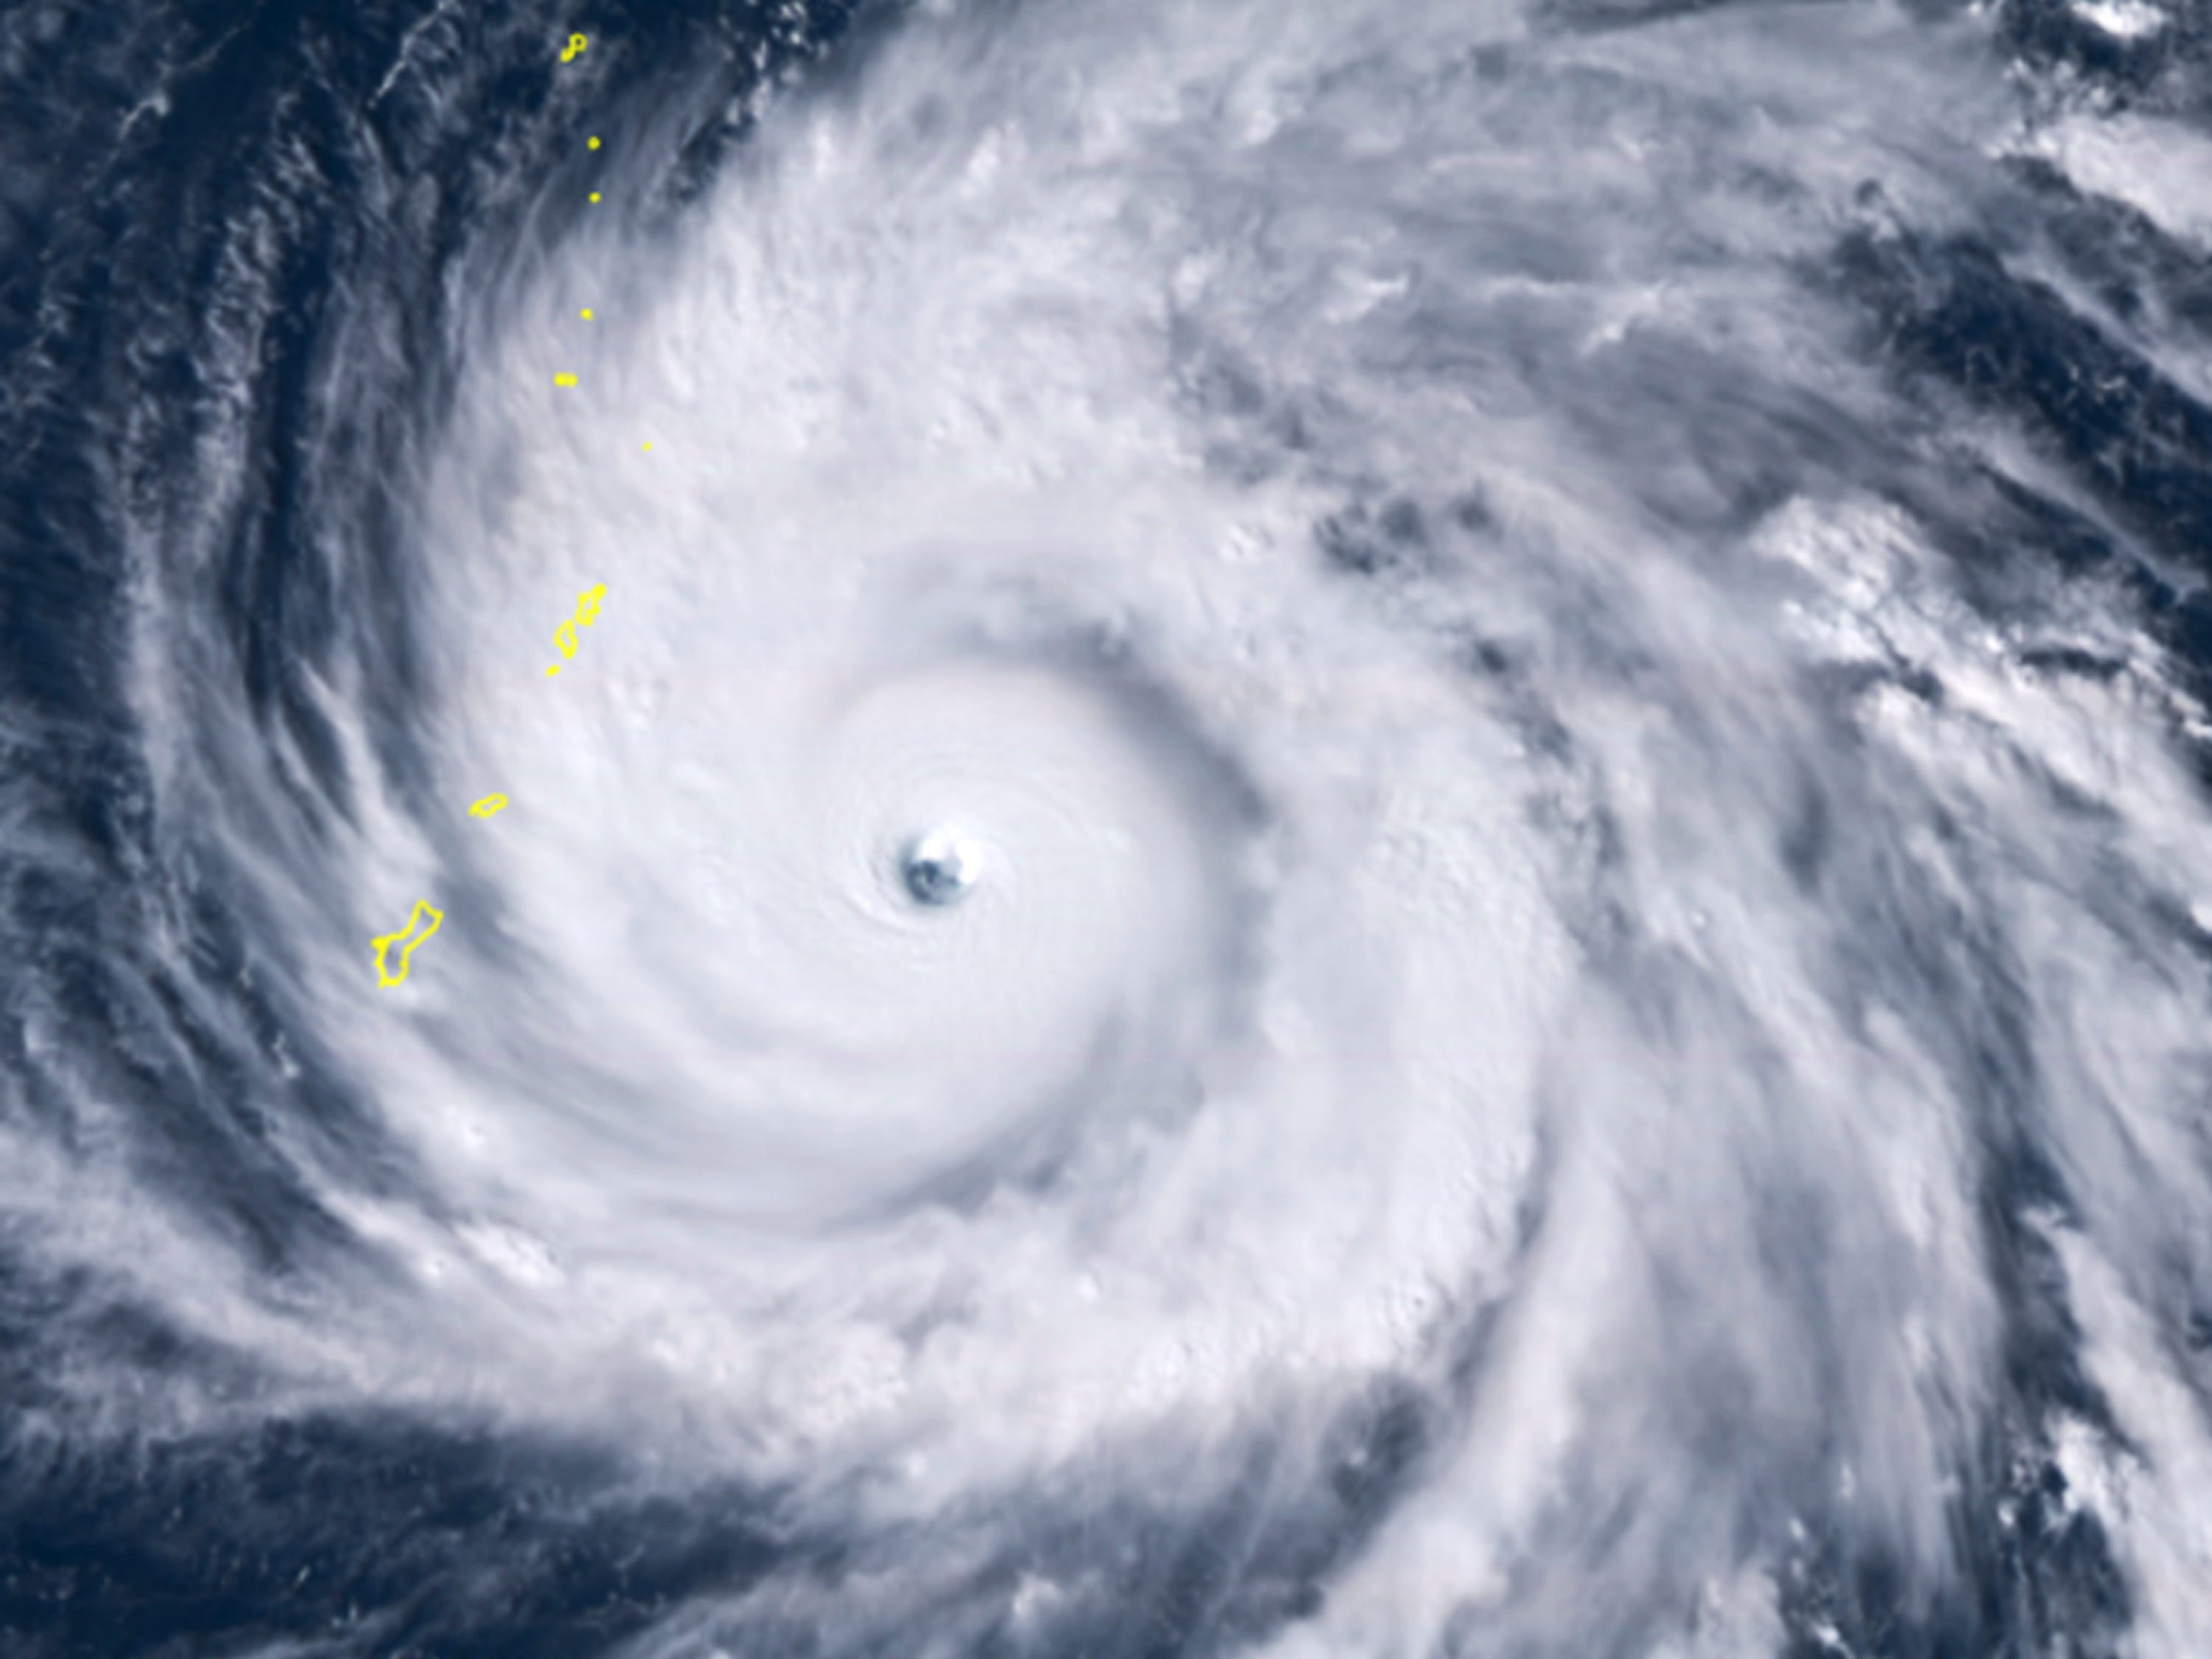 This satellite image provided by the National Oceanic and Atmospheric Administration (NOAA) shows Typhoon Yutu east of Guam Wednesday afternoon, Oct. 24, 2018 local time. The storm crossed over the U.S. Commonwealth of the Northern Mariana Islands, producing damaging winds and high surf. The National Weather Service in Honolulu says maximum sustained winds of 180 mph (290 kph) were recorded around the eye of the storm, which passed over Tinian island and Saipan early Thursday morning local time. Waves of 25 to 40 feet (6 to 12 meters) are expected around the eye of the storm.